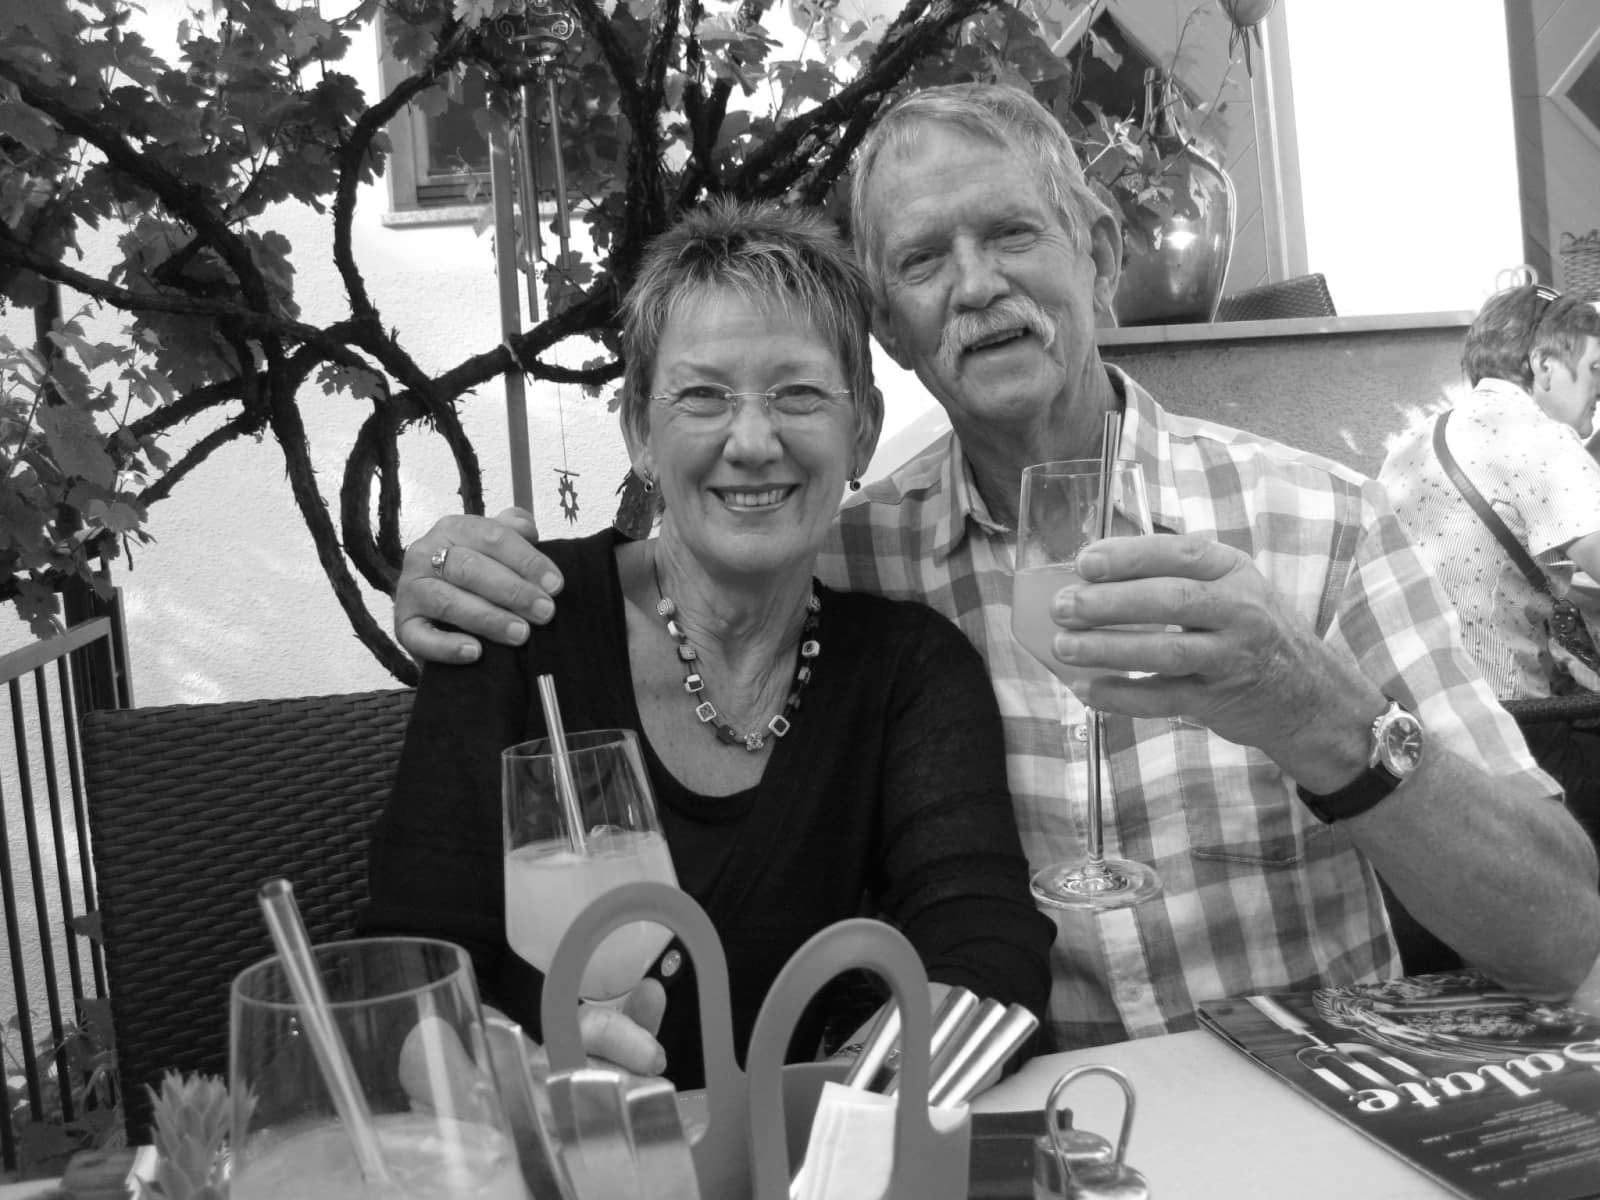 Ruth & John from Montville, Queensland, Australia